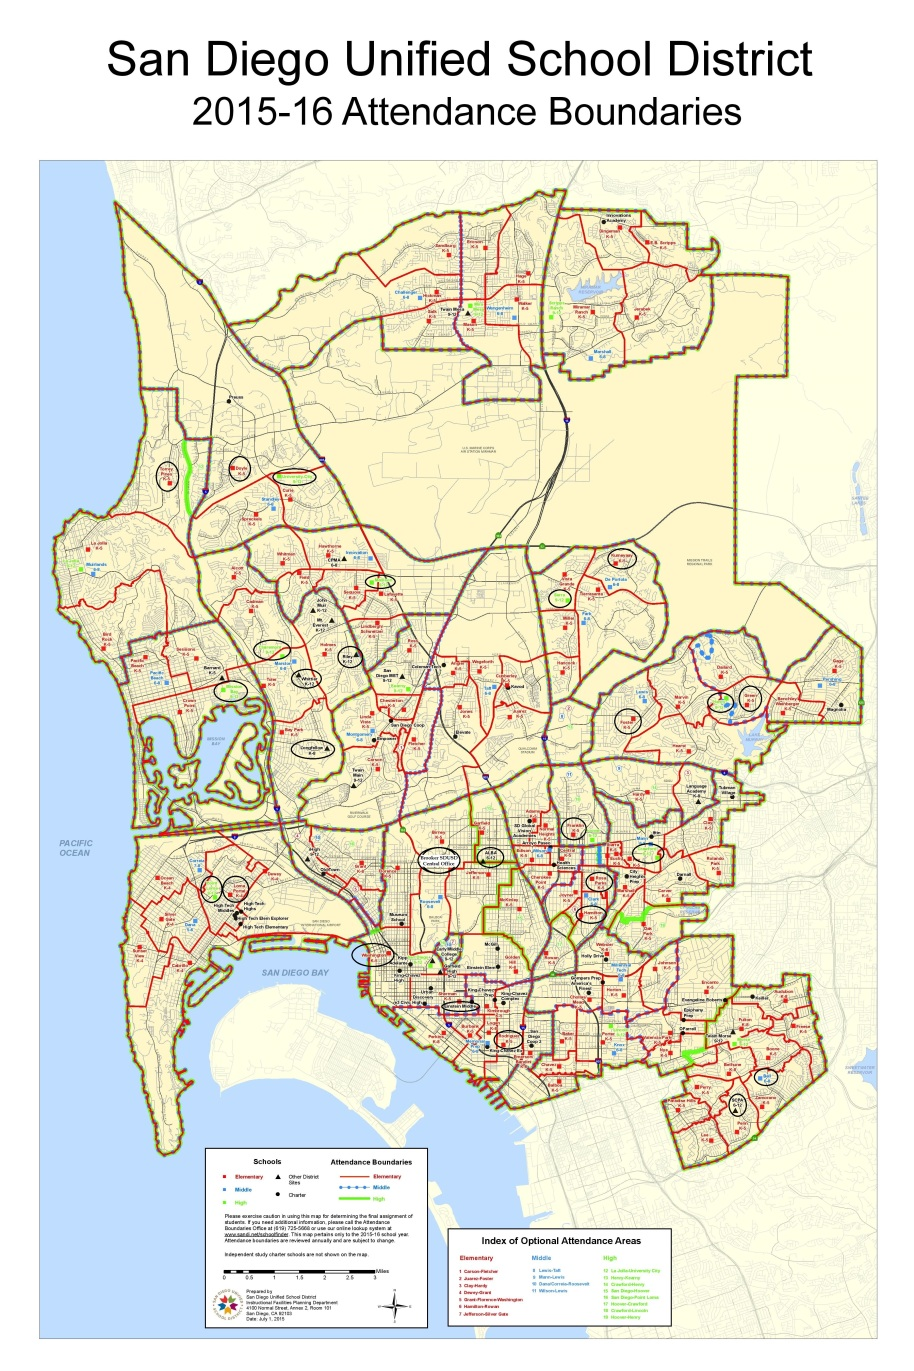 San Diego Unified Student Abuse Report Map-Schools On The Student Abuse Report Are Circled.